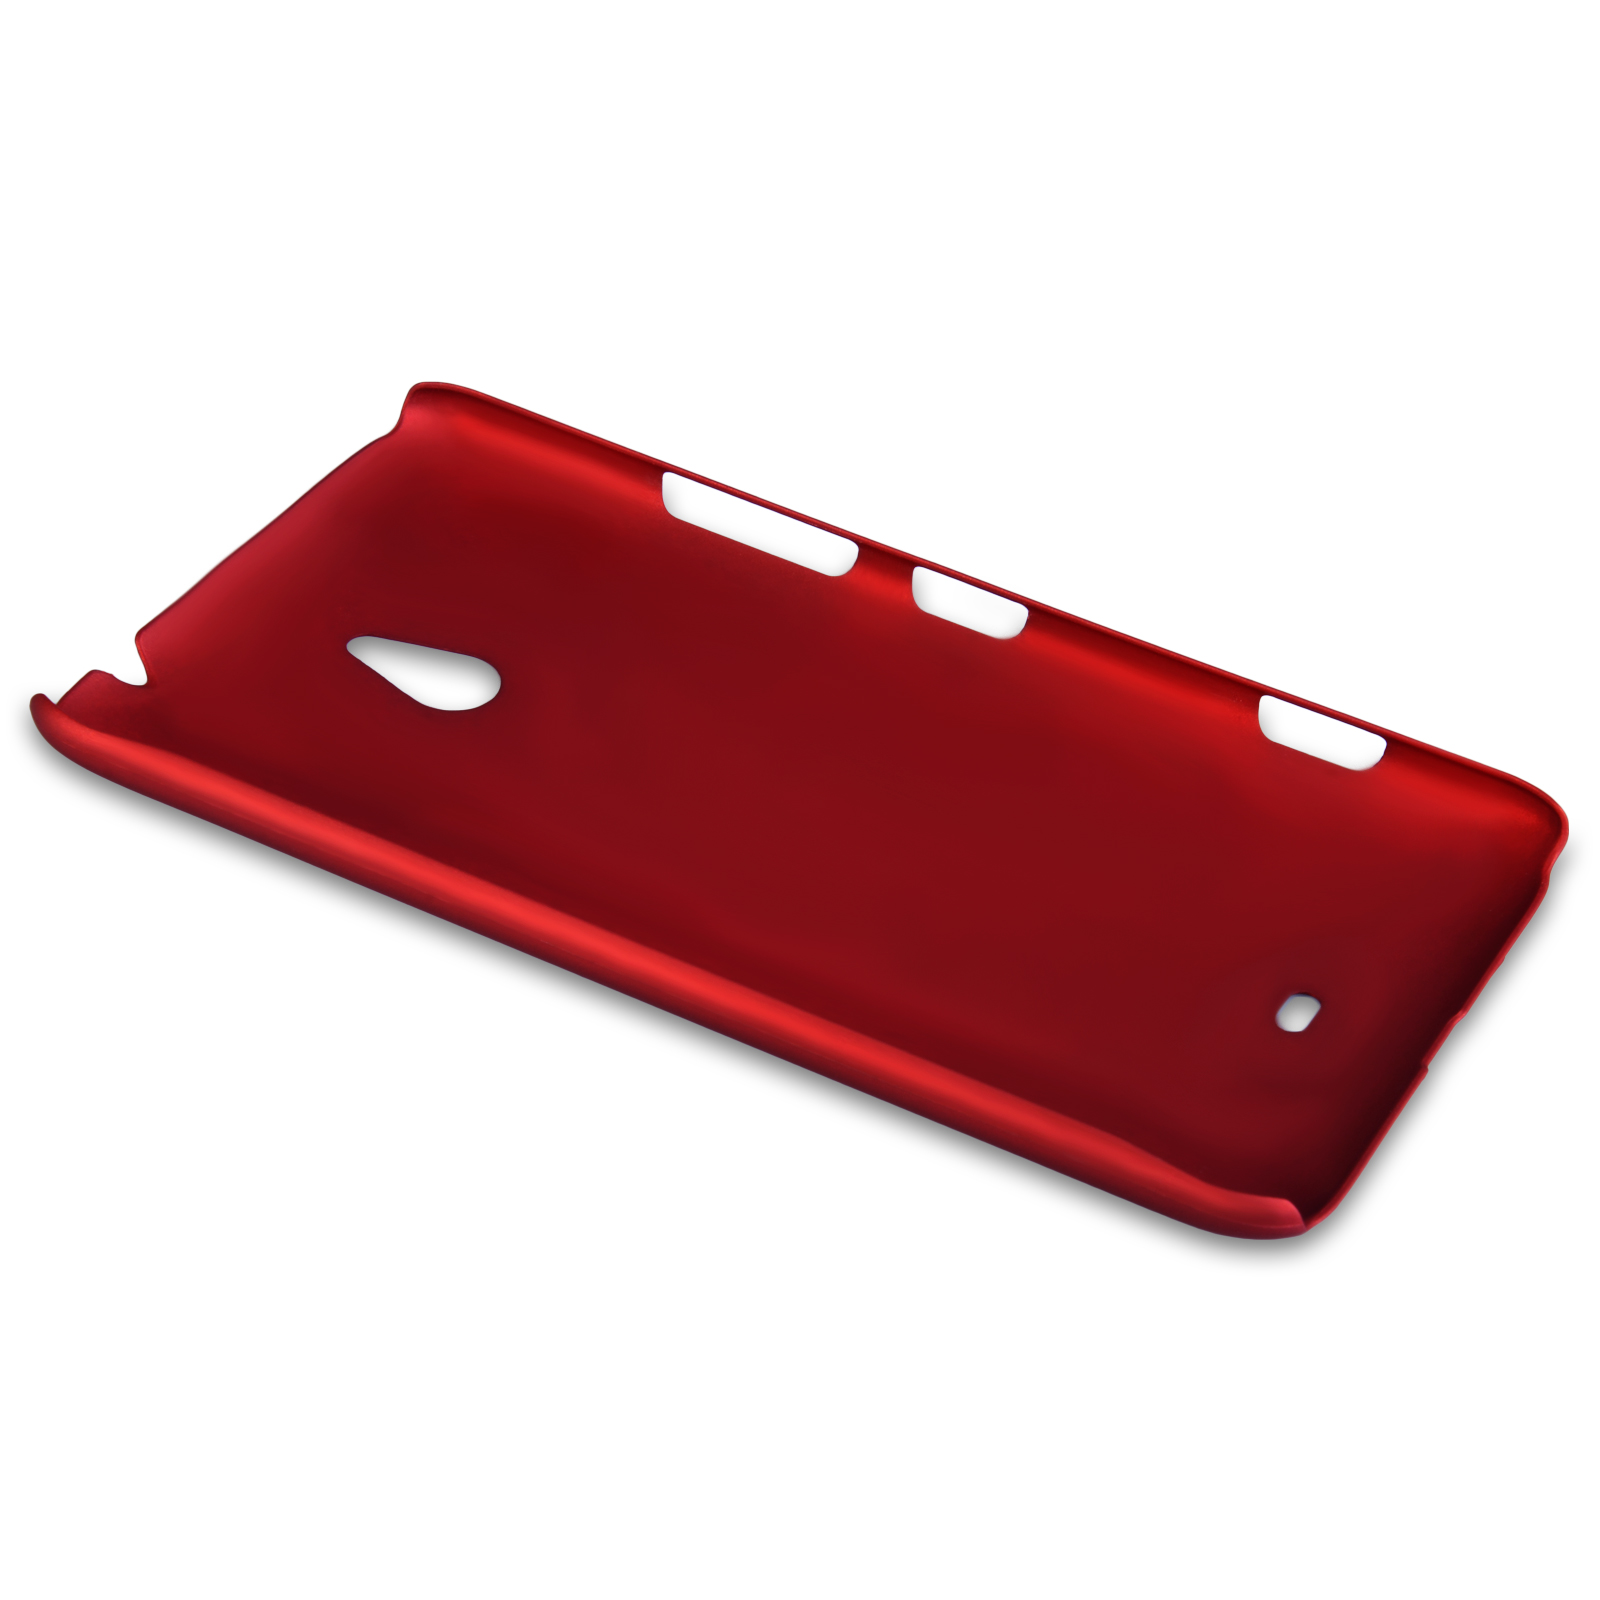 YouSave Accessories Nokia Lumia 1320 Hard Hybrid Case - Red